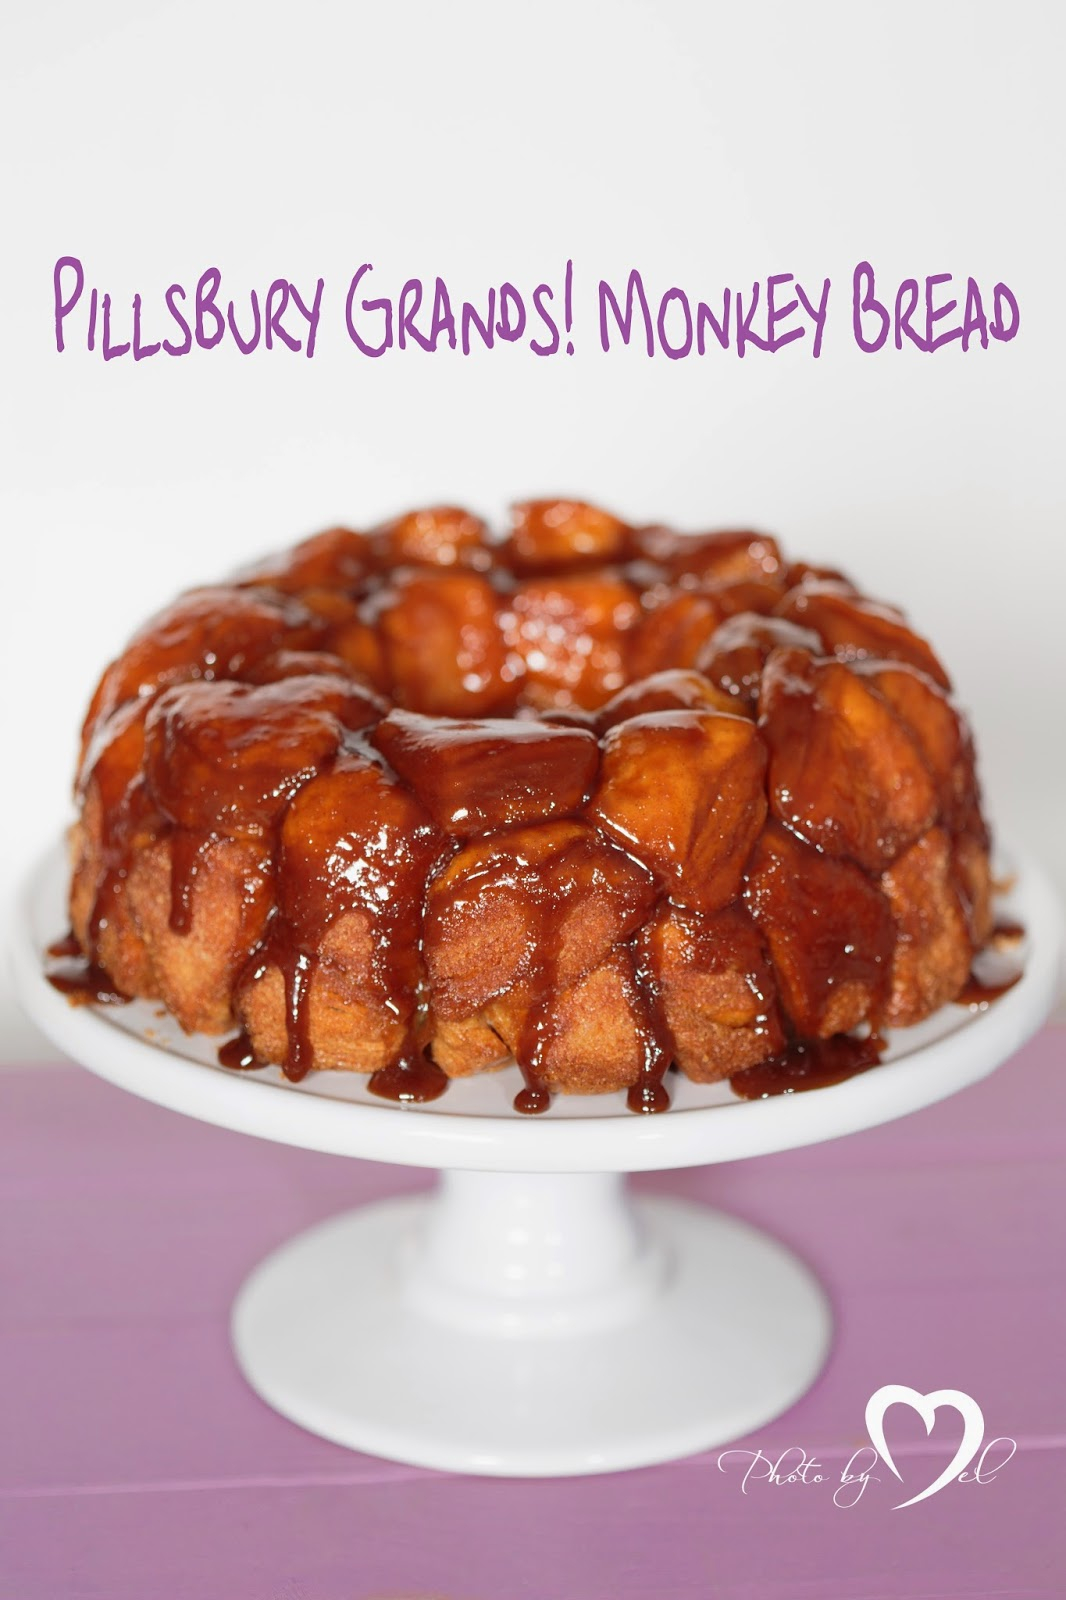 Cafe Chocolada: Pillsbury Grands! Monkey Bread